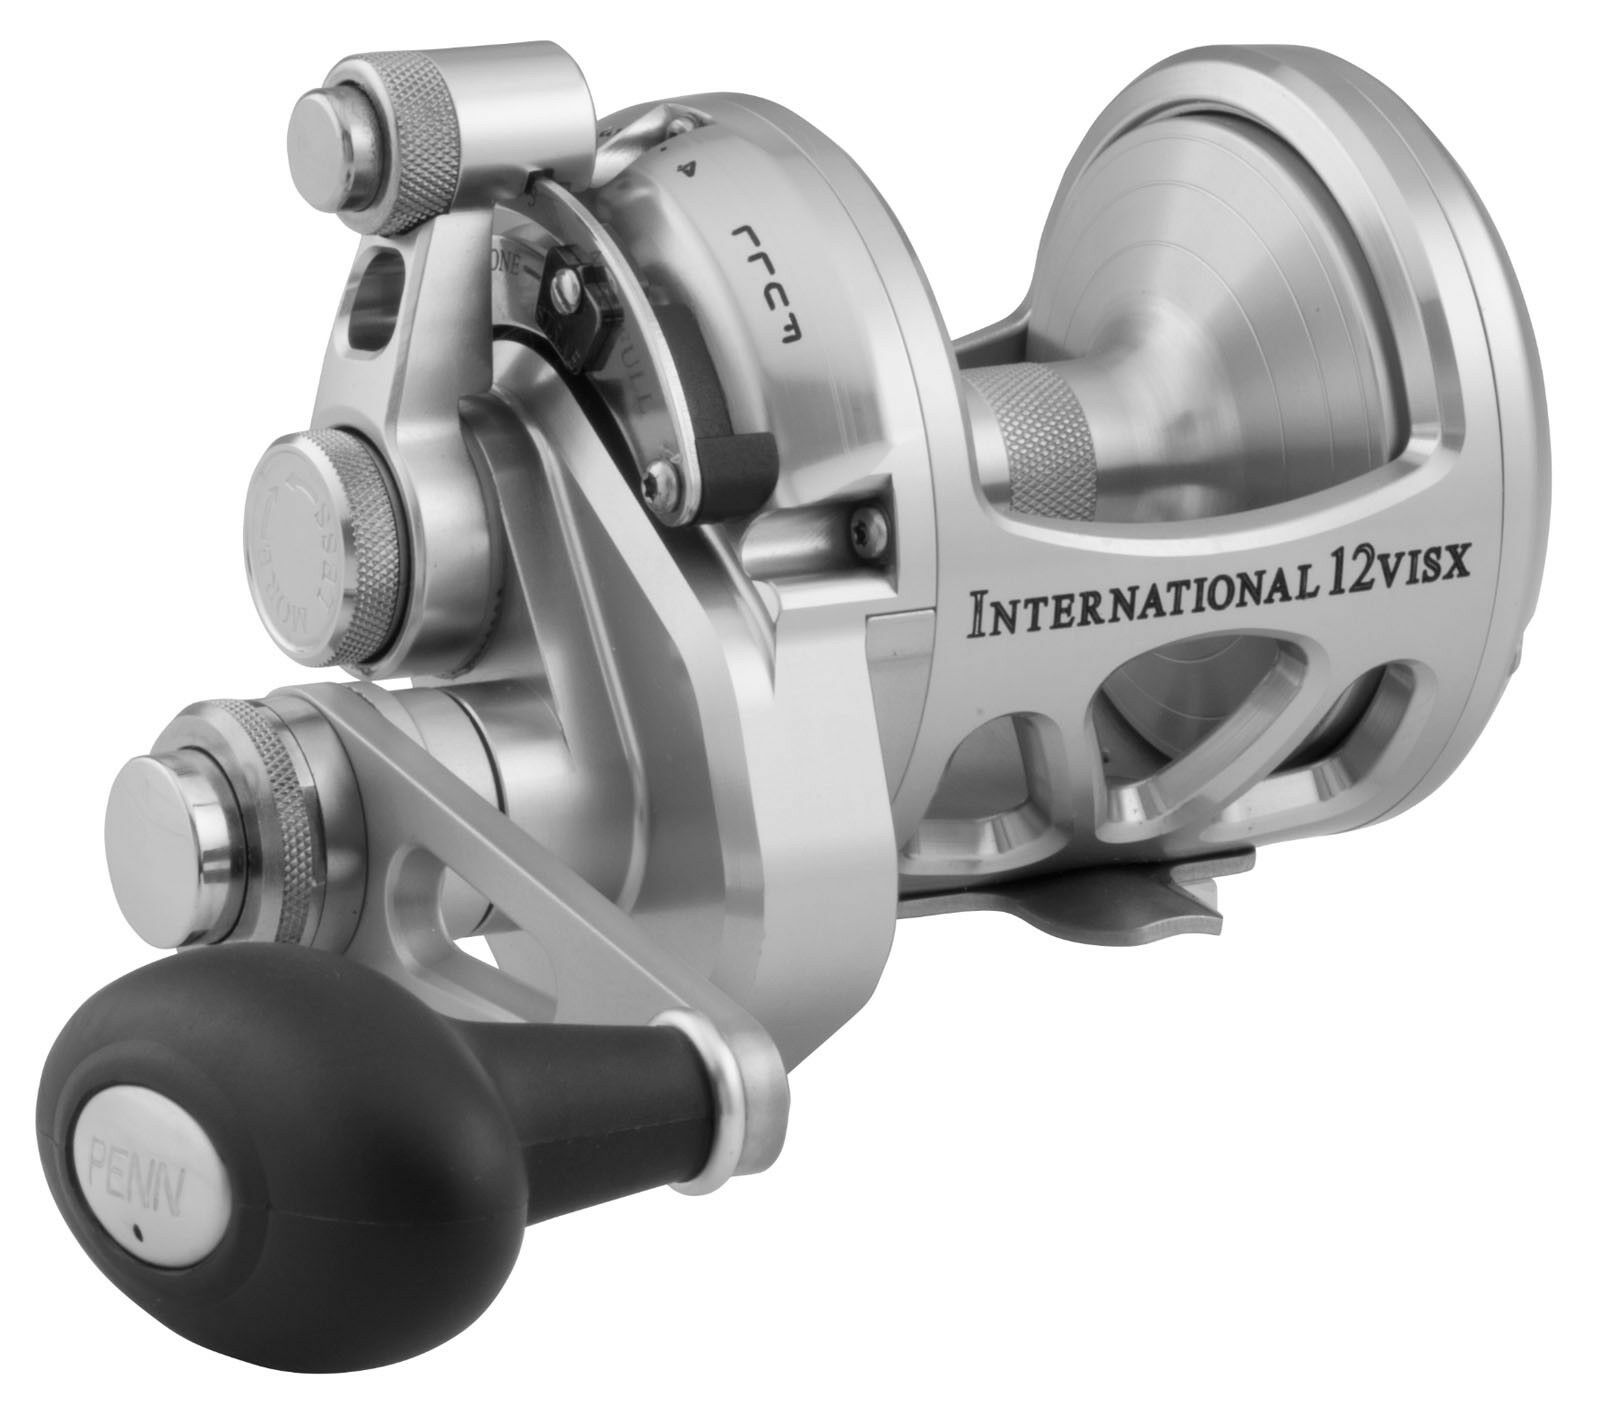 Penn International VI LD Saltwater Multiplier Sea Sea Sea Fishing Reel - All models 035159